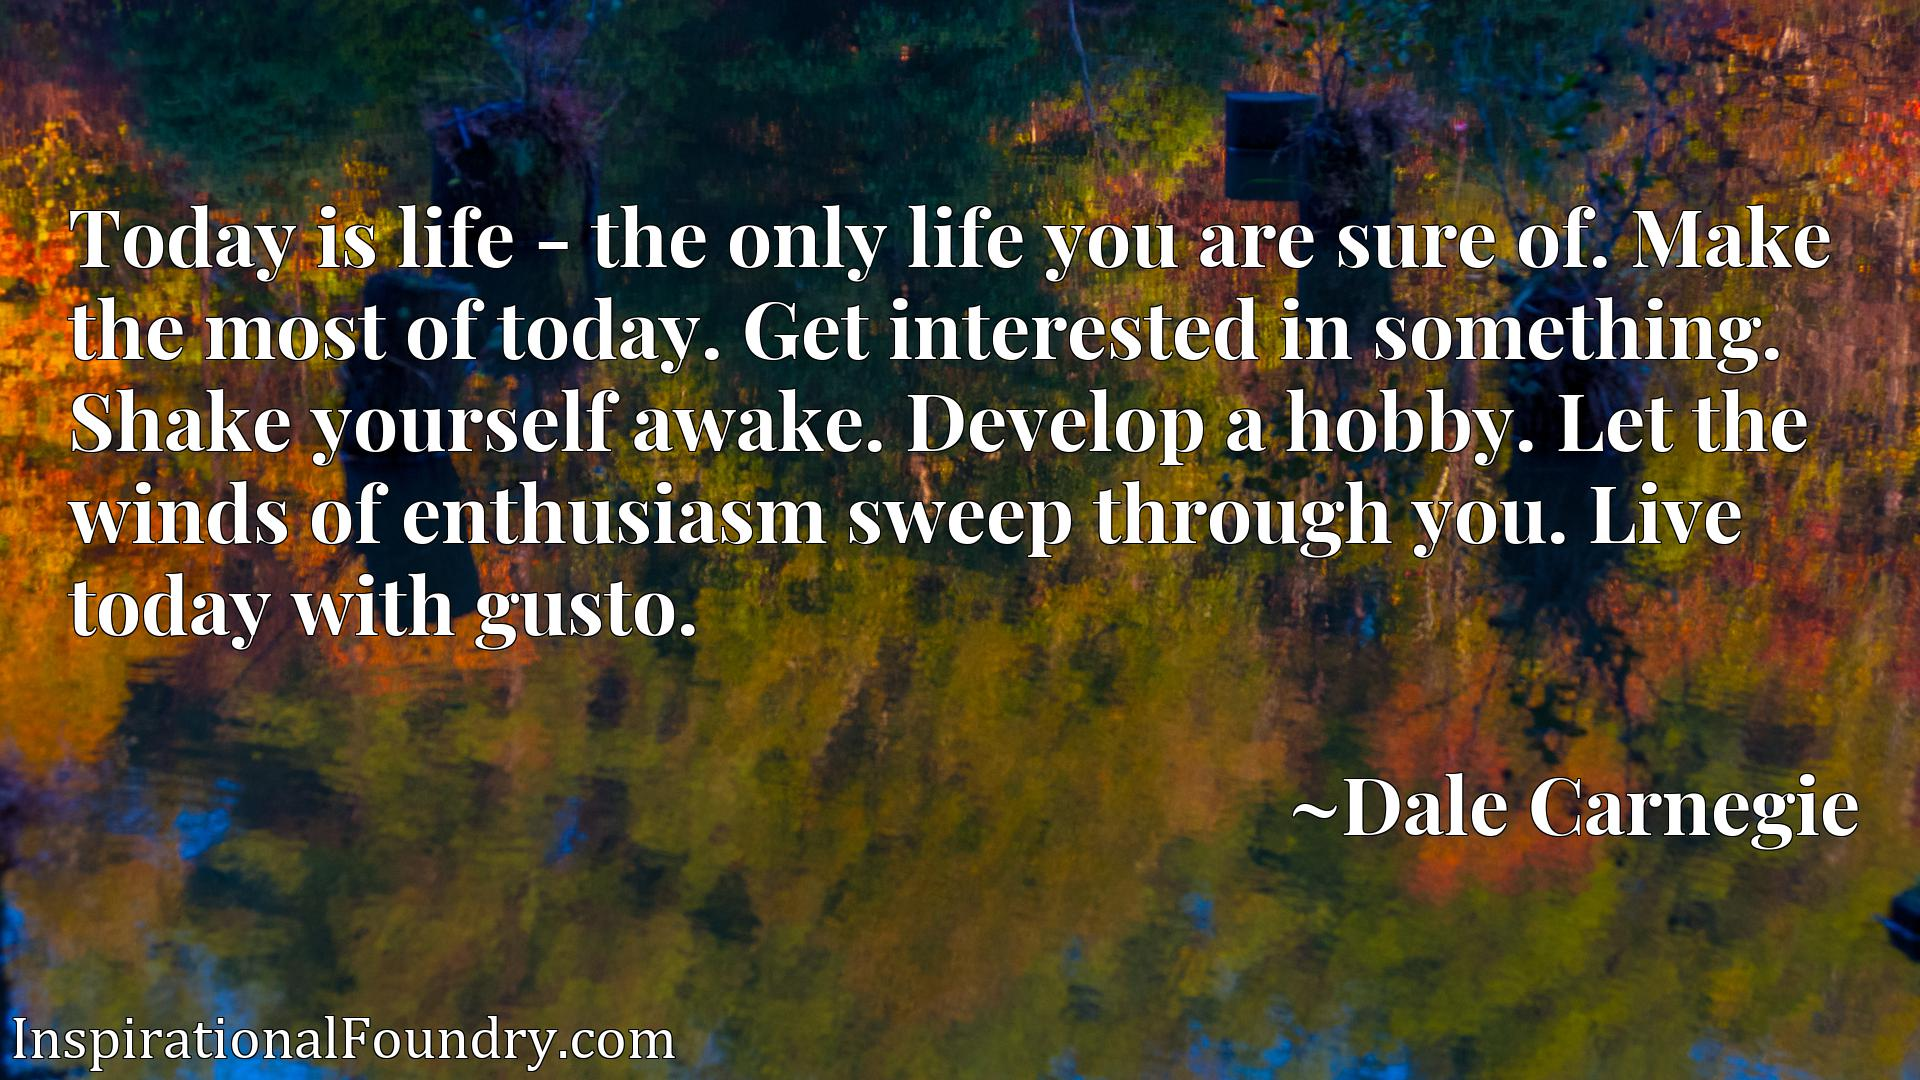 Today is life - the only life you are sure of. Make the most of today. Get interested in something. Shake yourself awake. Develop a hobby. Let the winds of enthusiasm sweep through you. Live today with gusto.